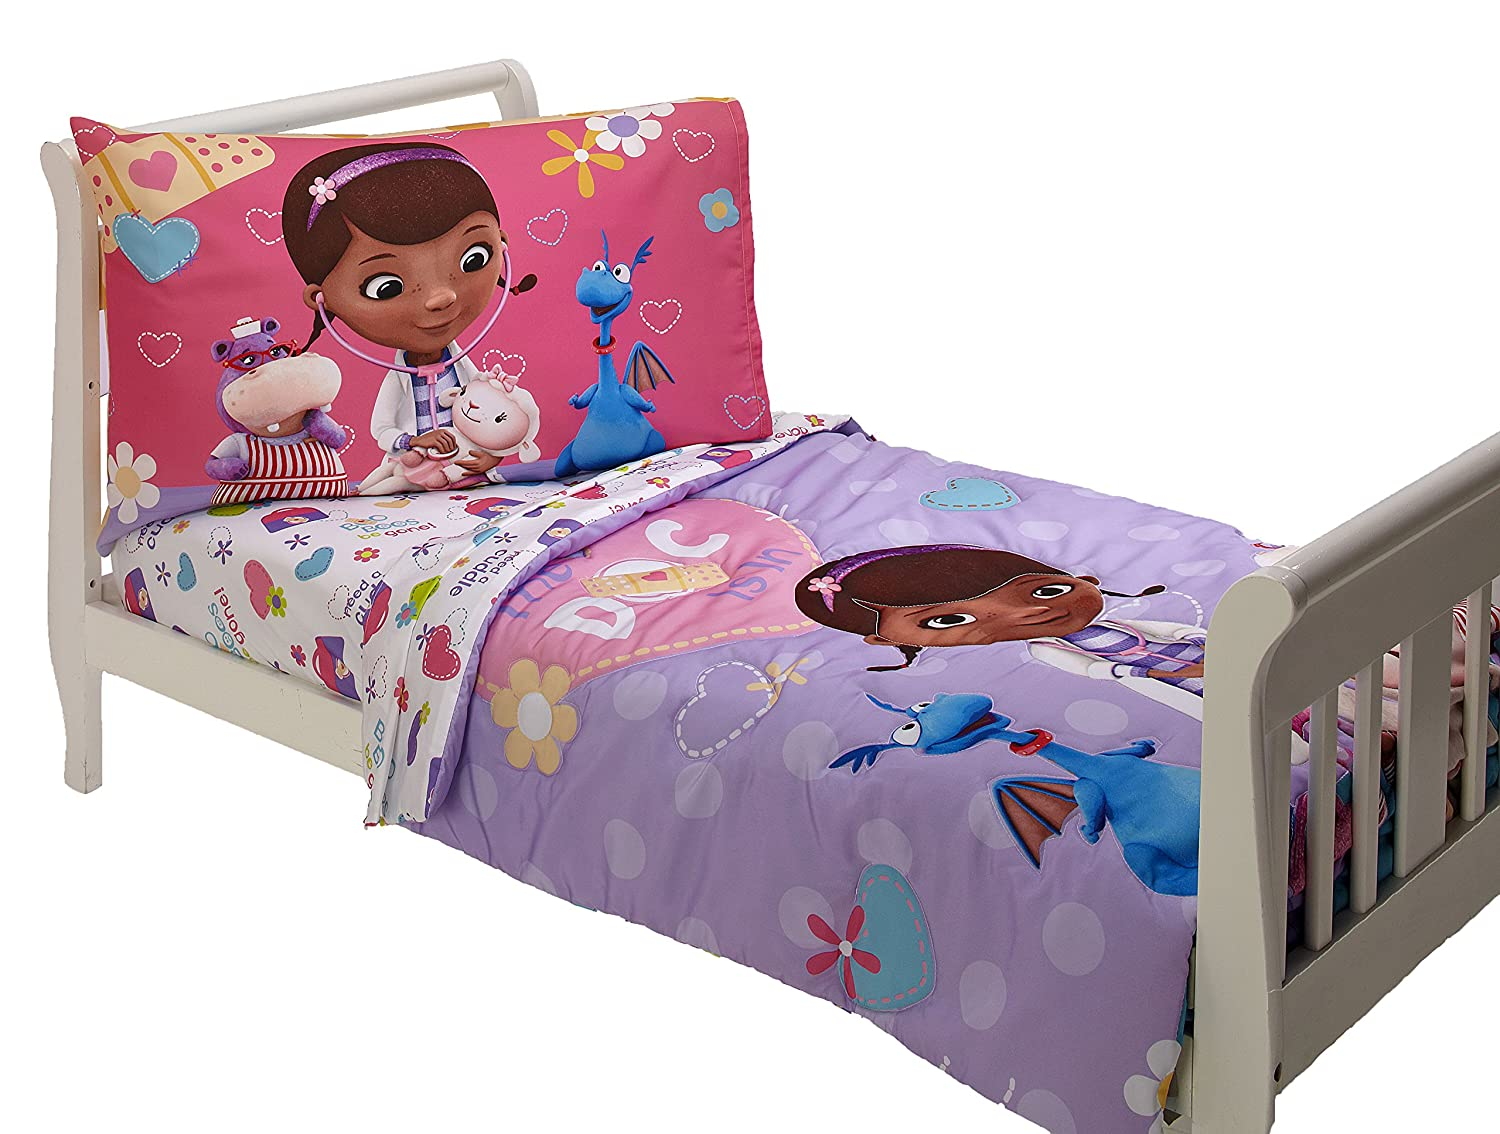 doc mcstuffins bedroom set doc mcstuffins bedding set toddler 4 15192